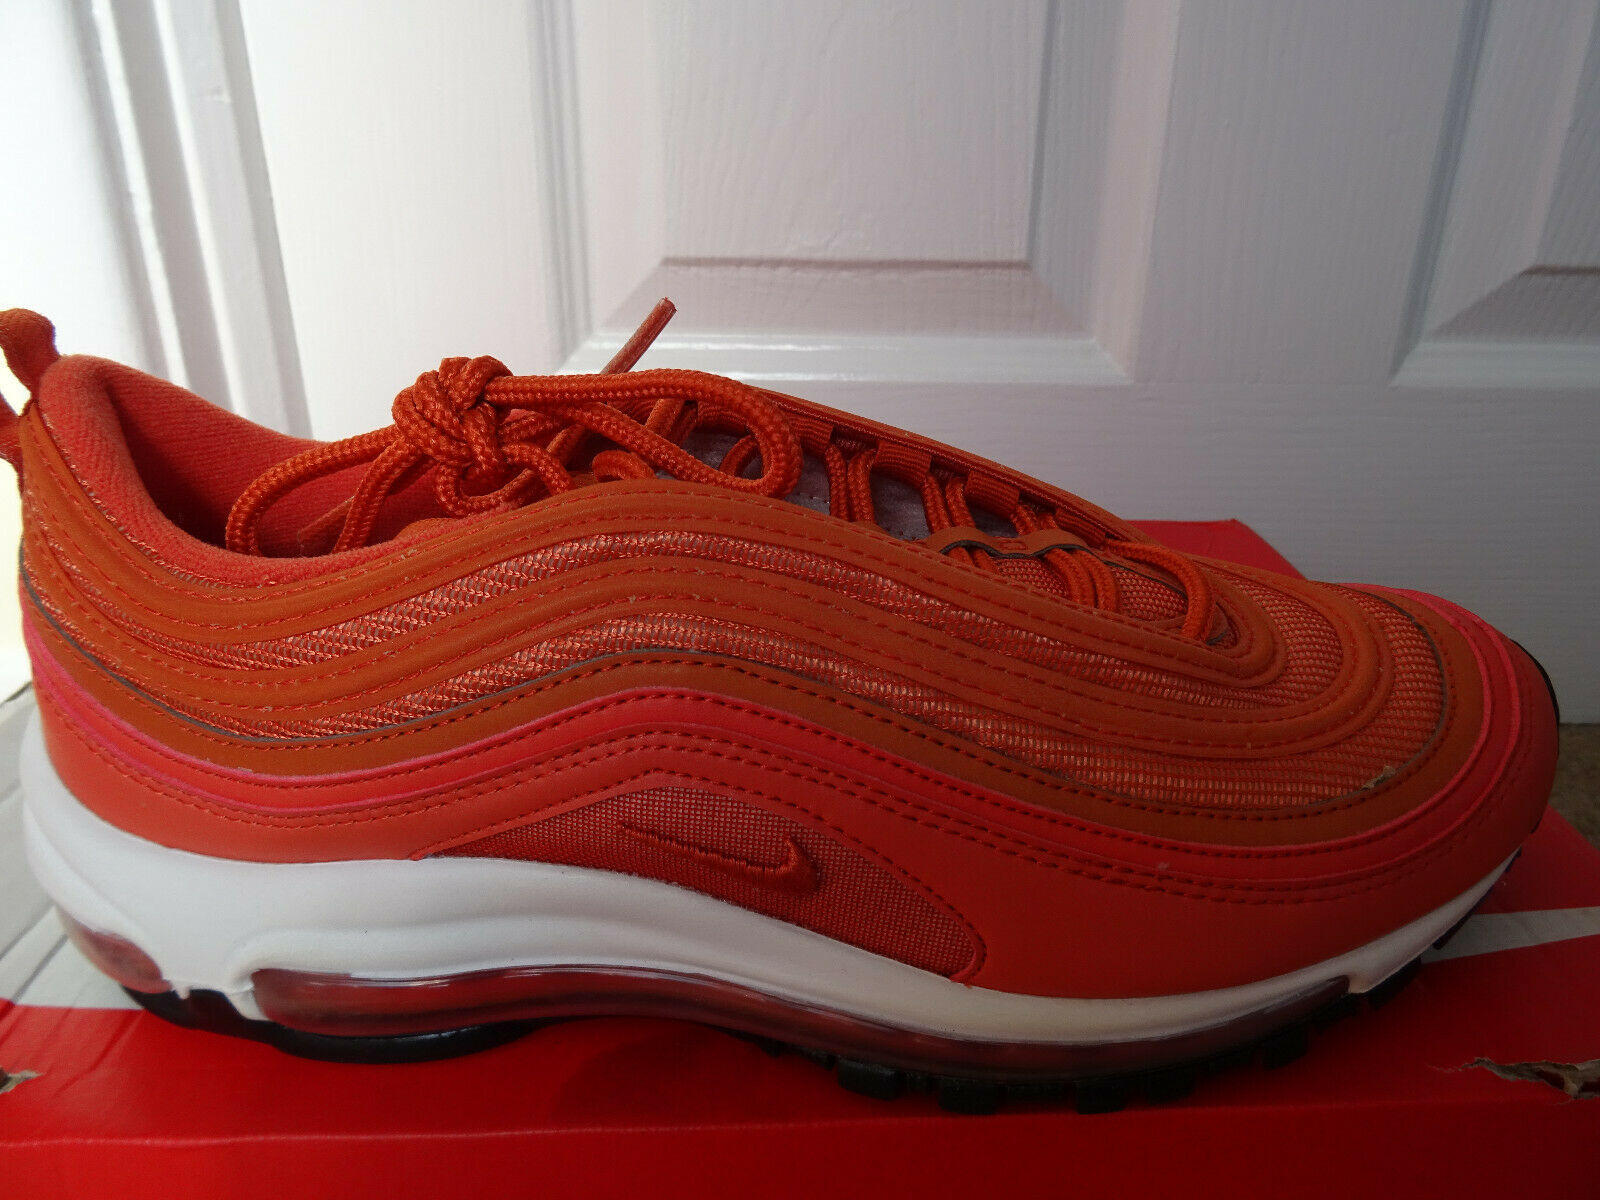 Nike Air max 97 damen trainers schuhe 921733 800 uk 6 eu 40 us 8.5 NEW+BOX